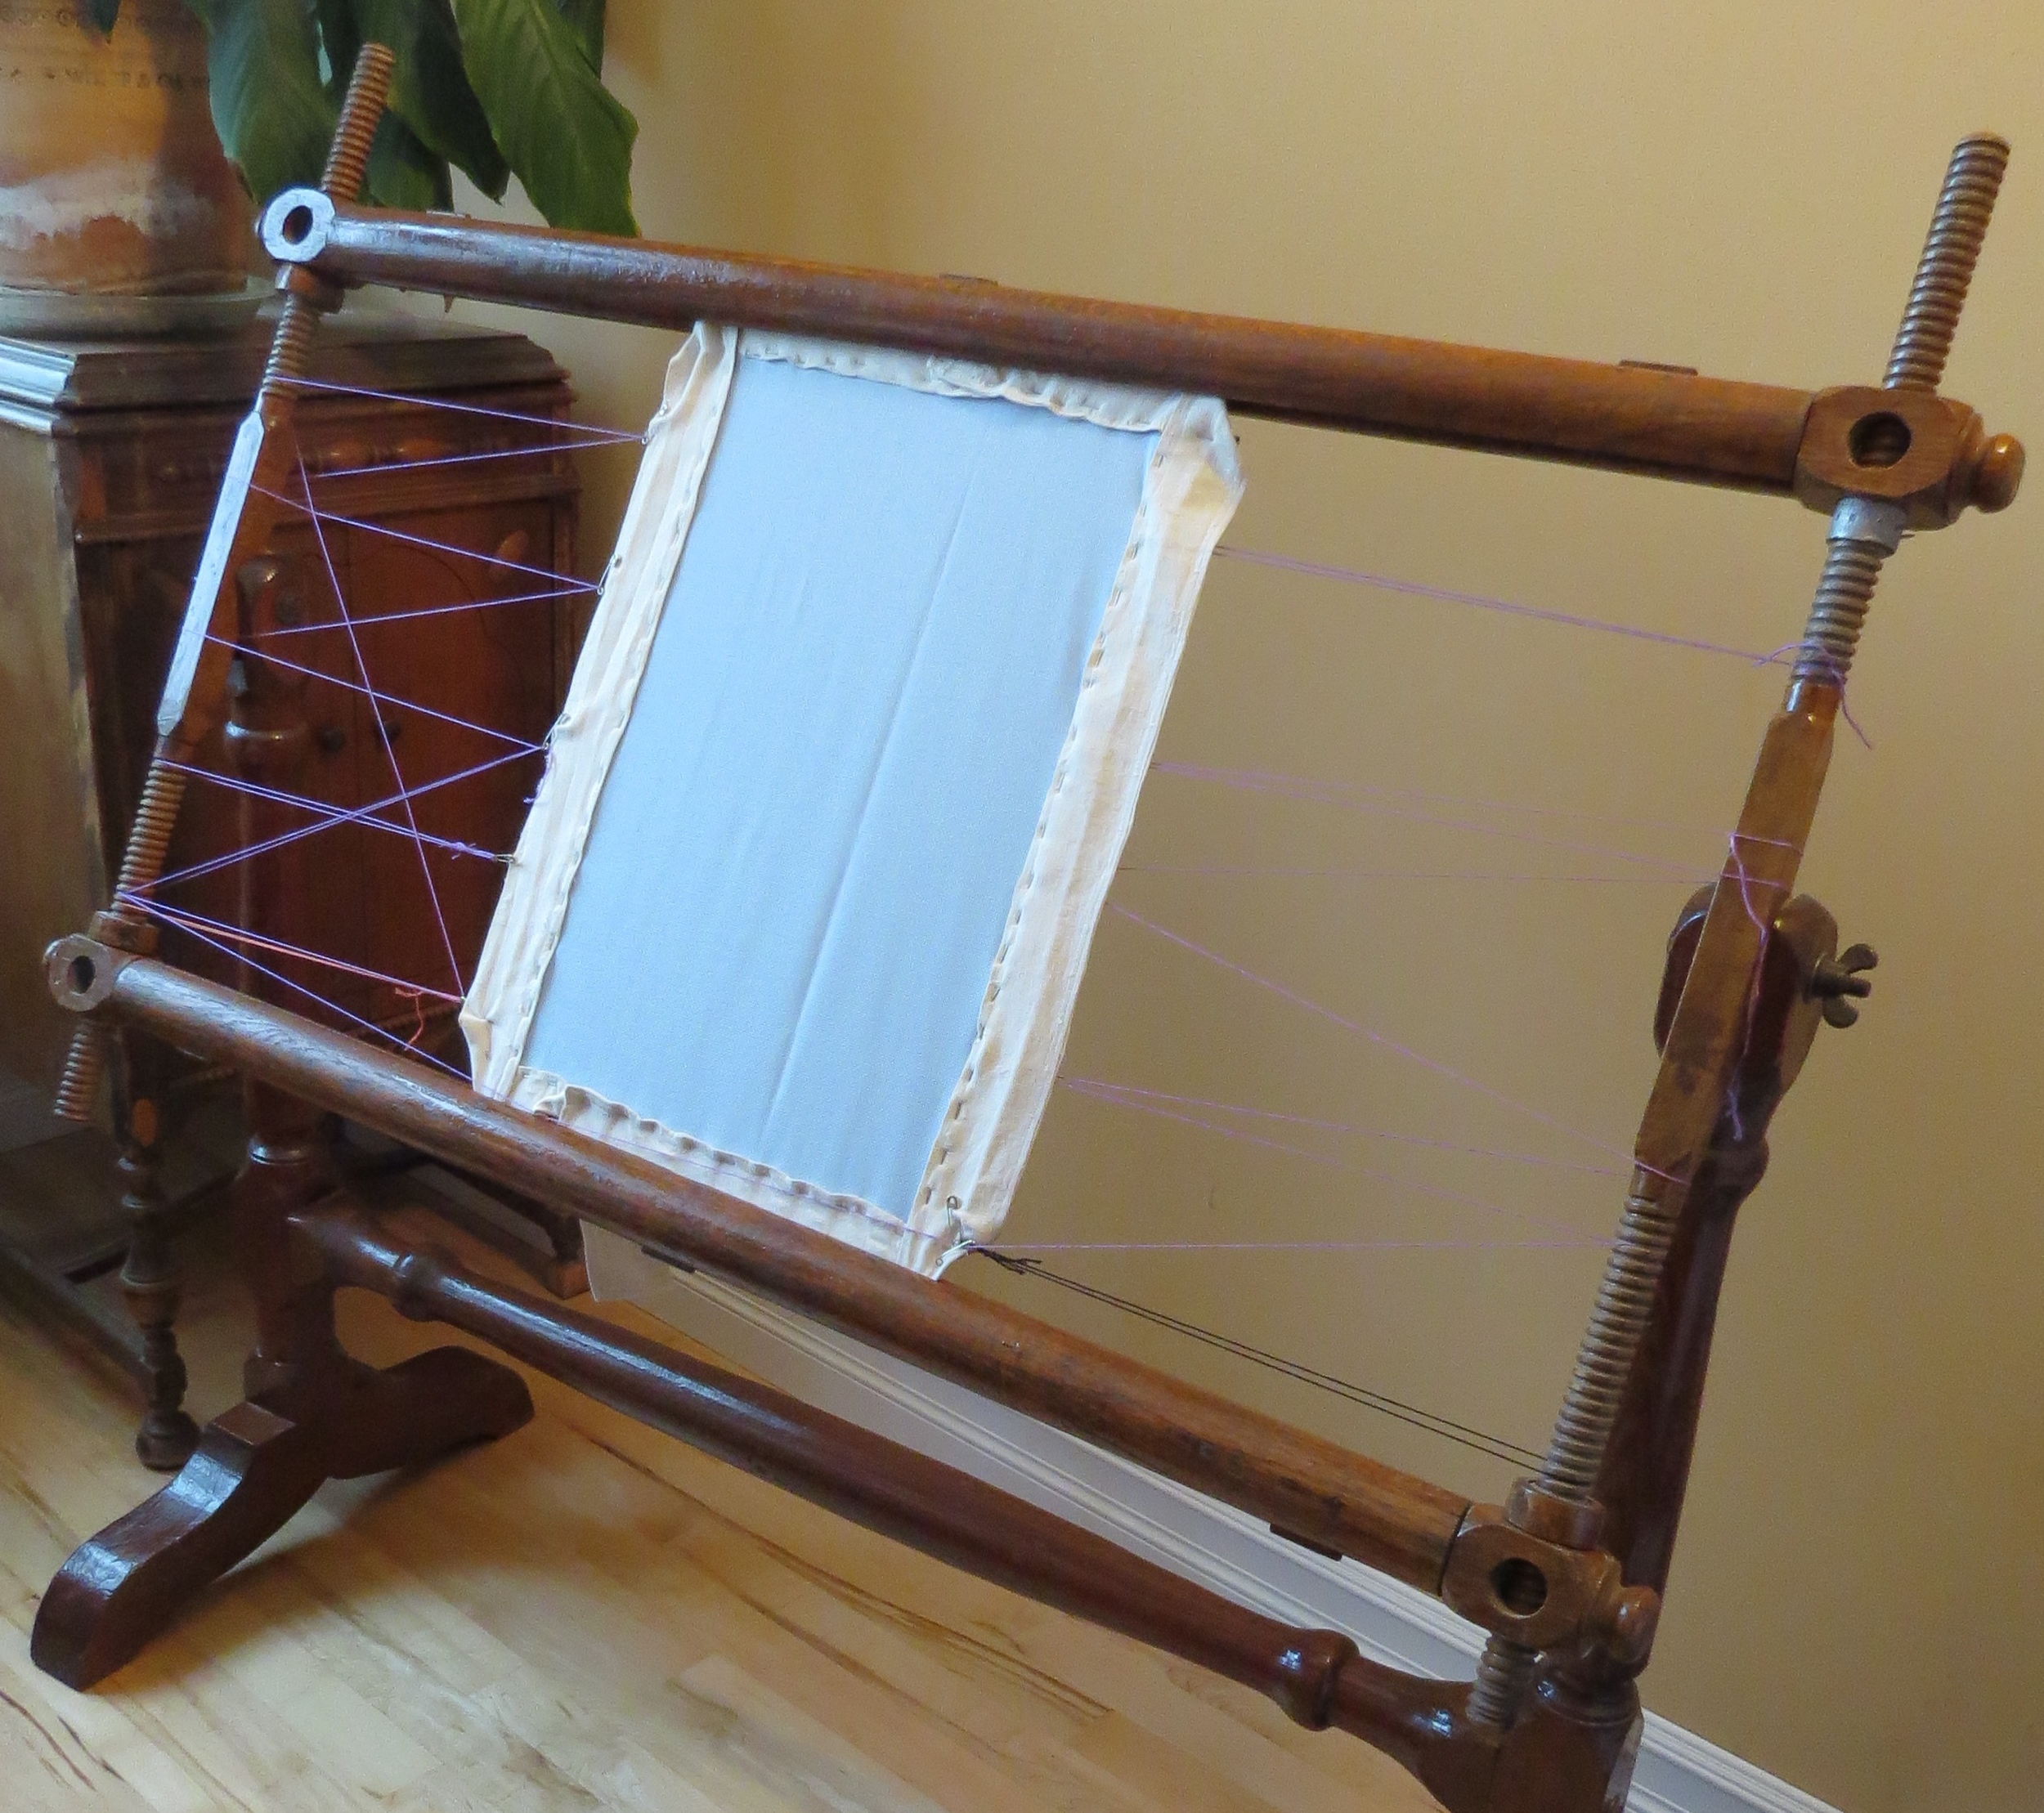 My grandmother's loom, which she commissioned in the 1934.